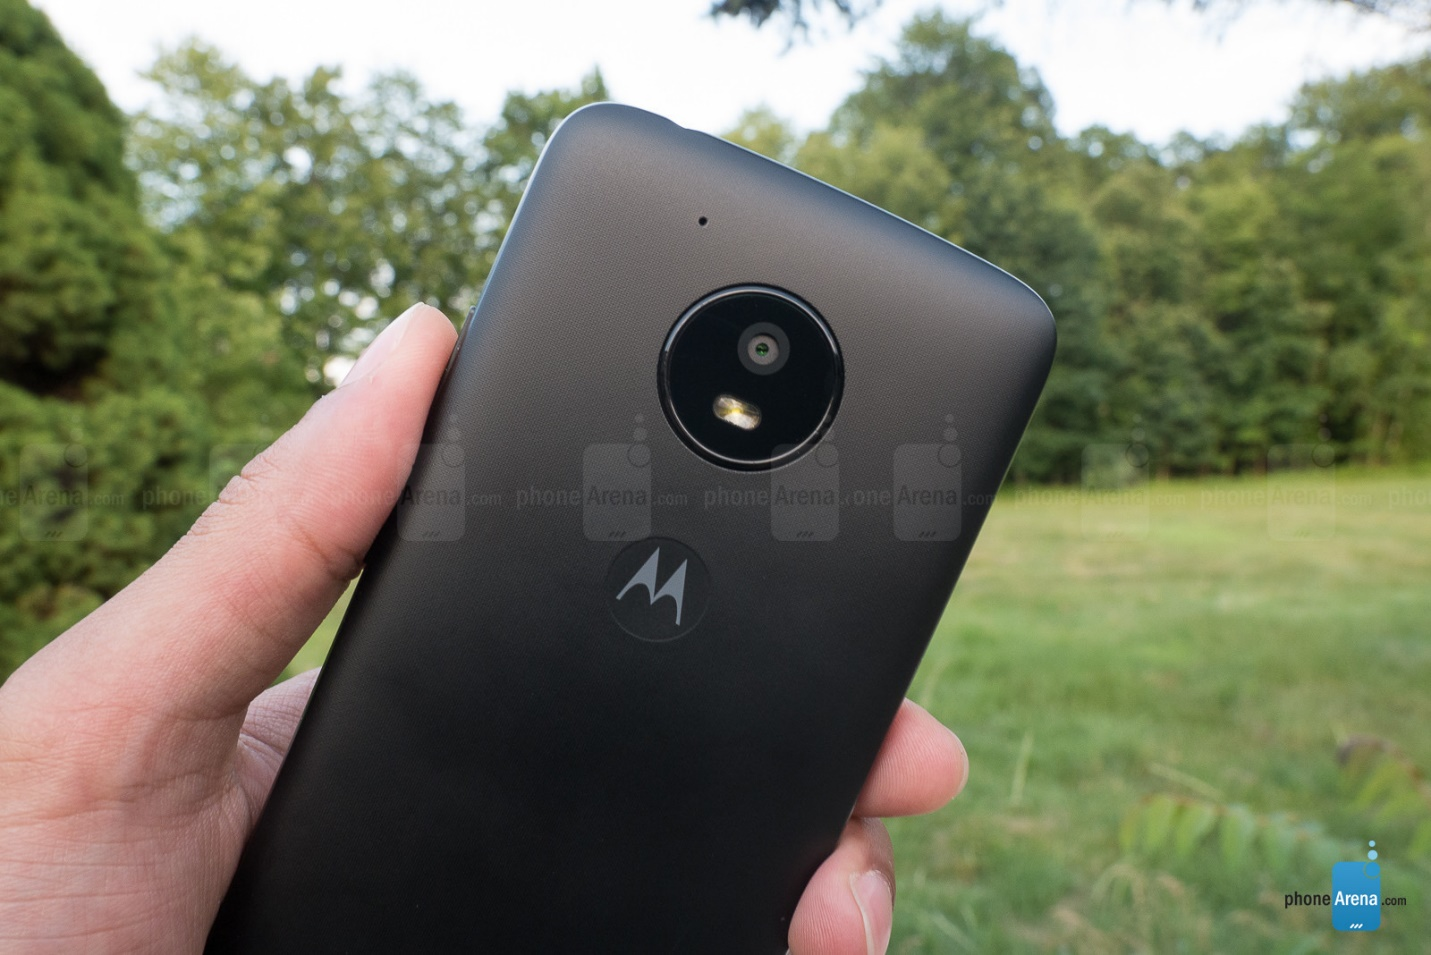 https://i-cdn.phonearena.com/images/reviews/207499-image/Motorola-Moto-E4-Review-004.jpg